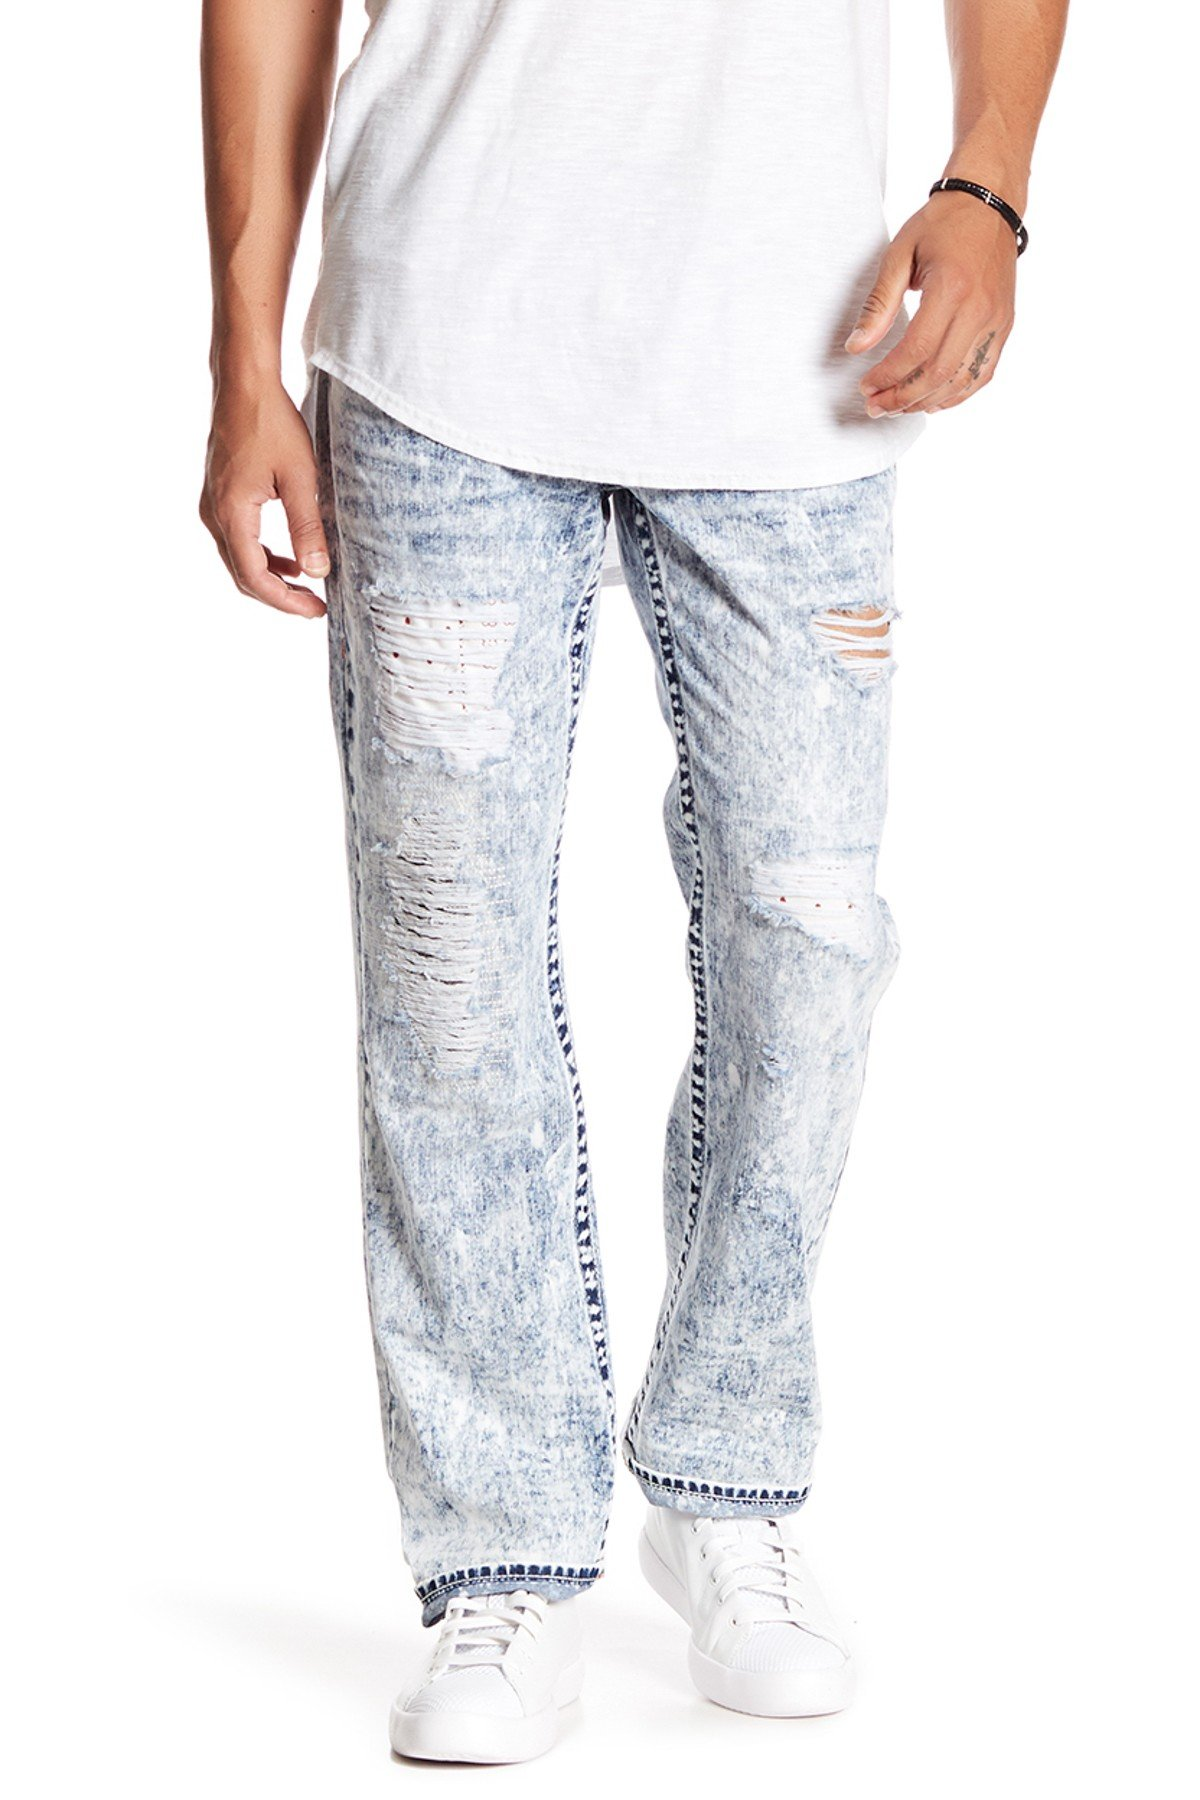 True Religion Men's Straight Leg Relaxed Bandana Ripped Patch Jeans w/Flaps in Summer Melody (33)